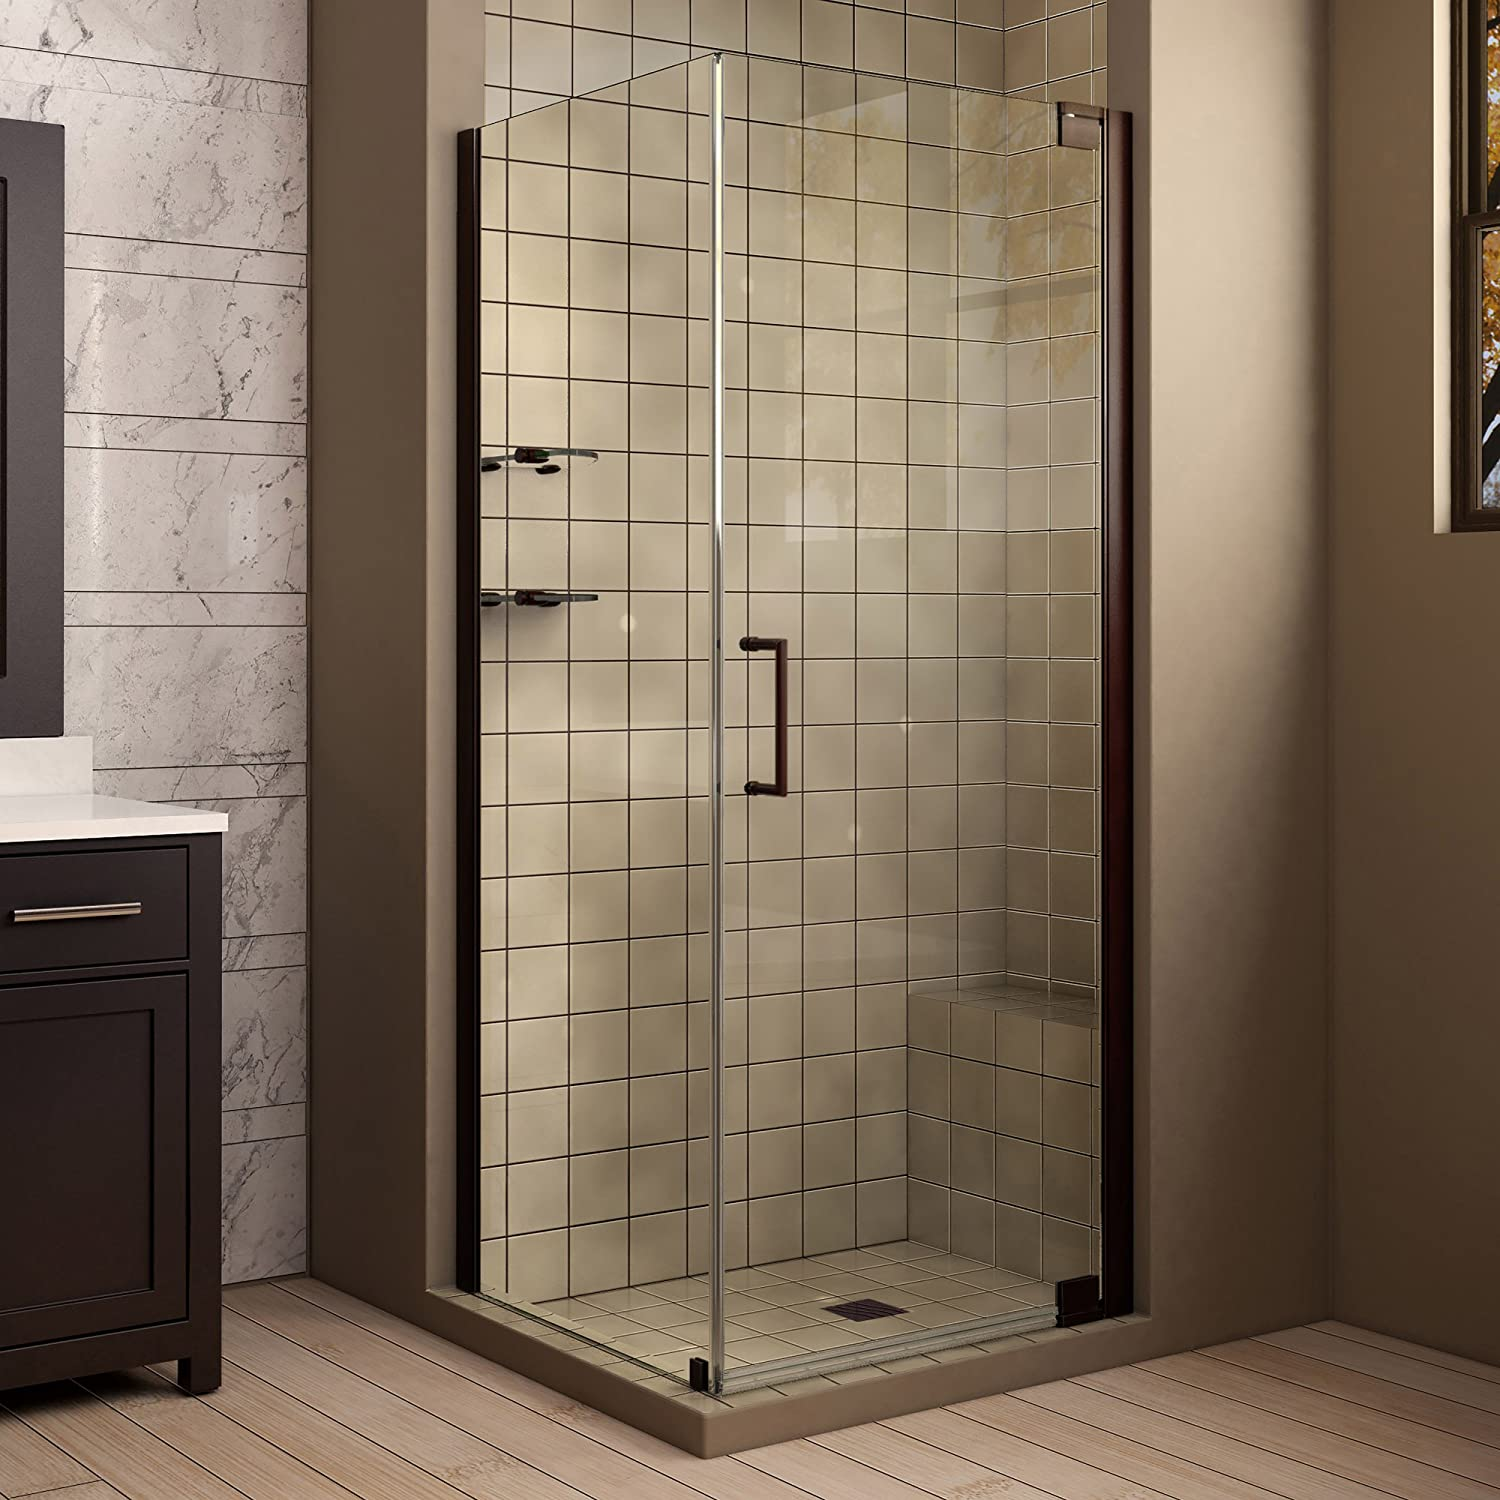 DreamLine Elegance 30 in. W x 30 in. D x 72 in. H Frameless Pivot Shower Enclosure in Oil Rubbed Bronze, SHEN-4130301-06